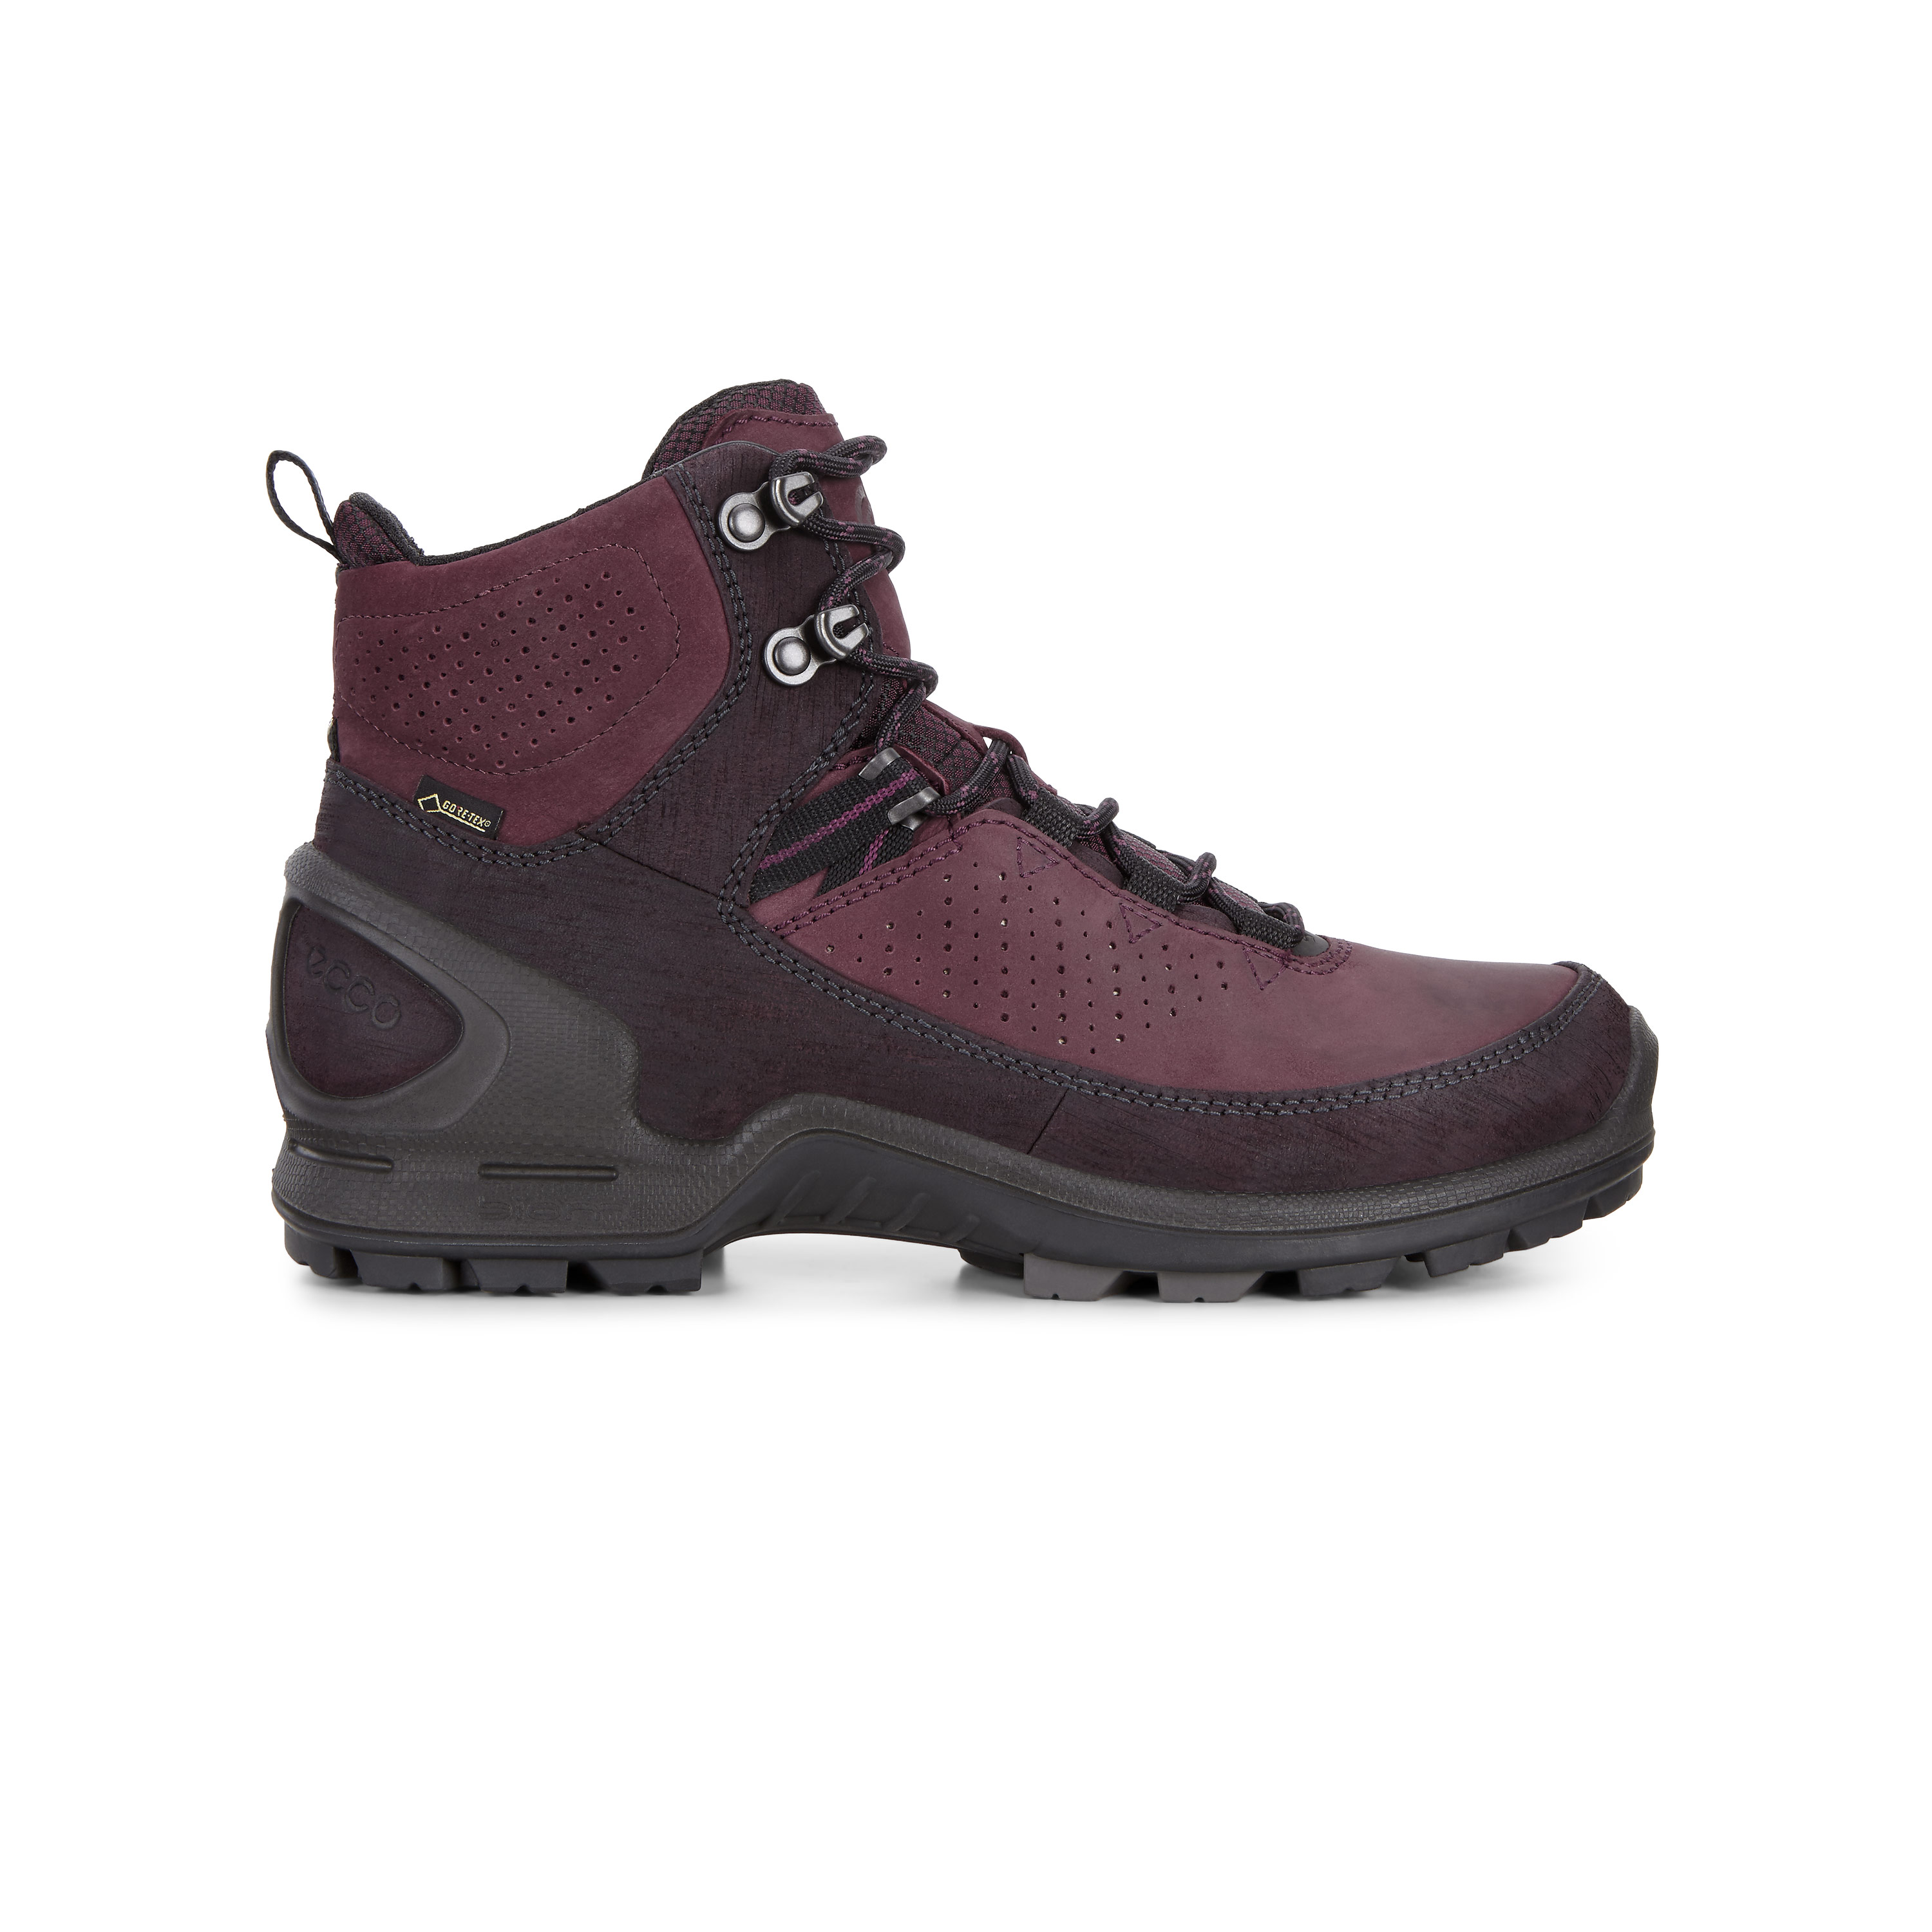 Women's ECCO Biom Terrain Renk GTX Tough hiking boots with